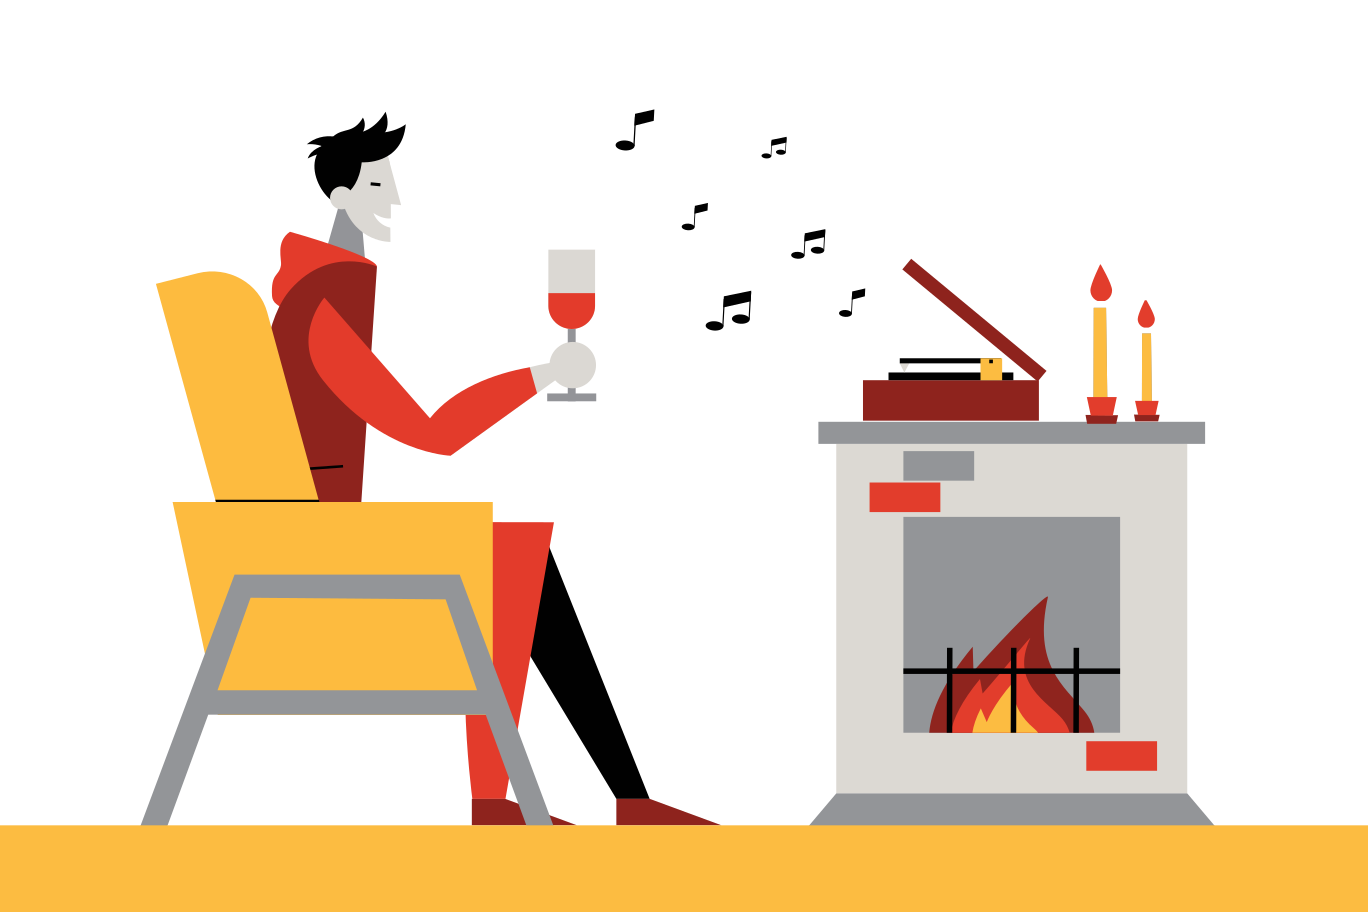 style Relaxing evening Vector images in PNG and SVG | Icons8 Illustrations